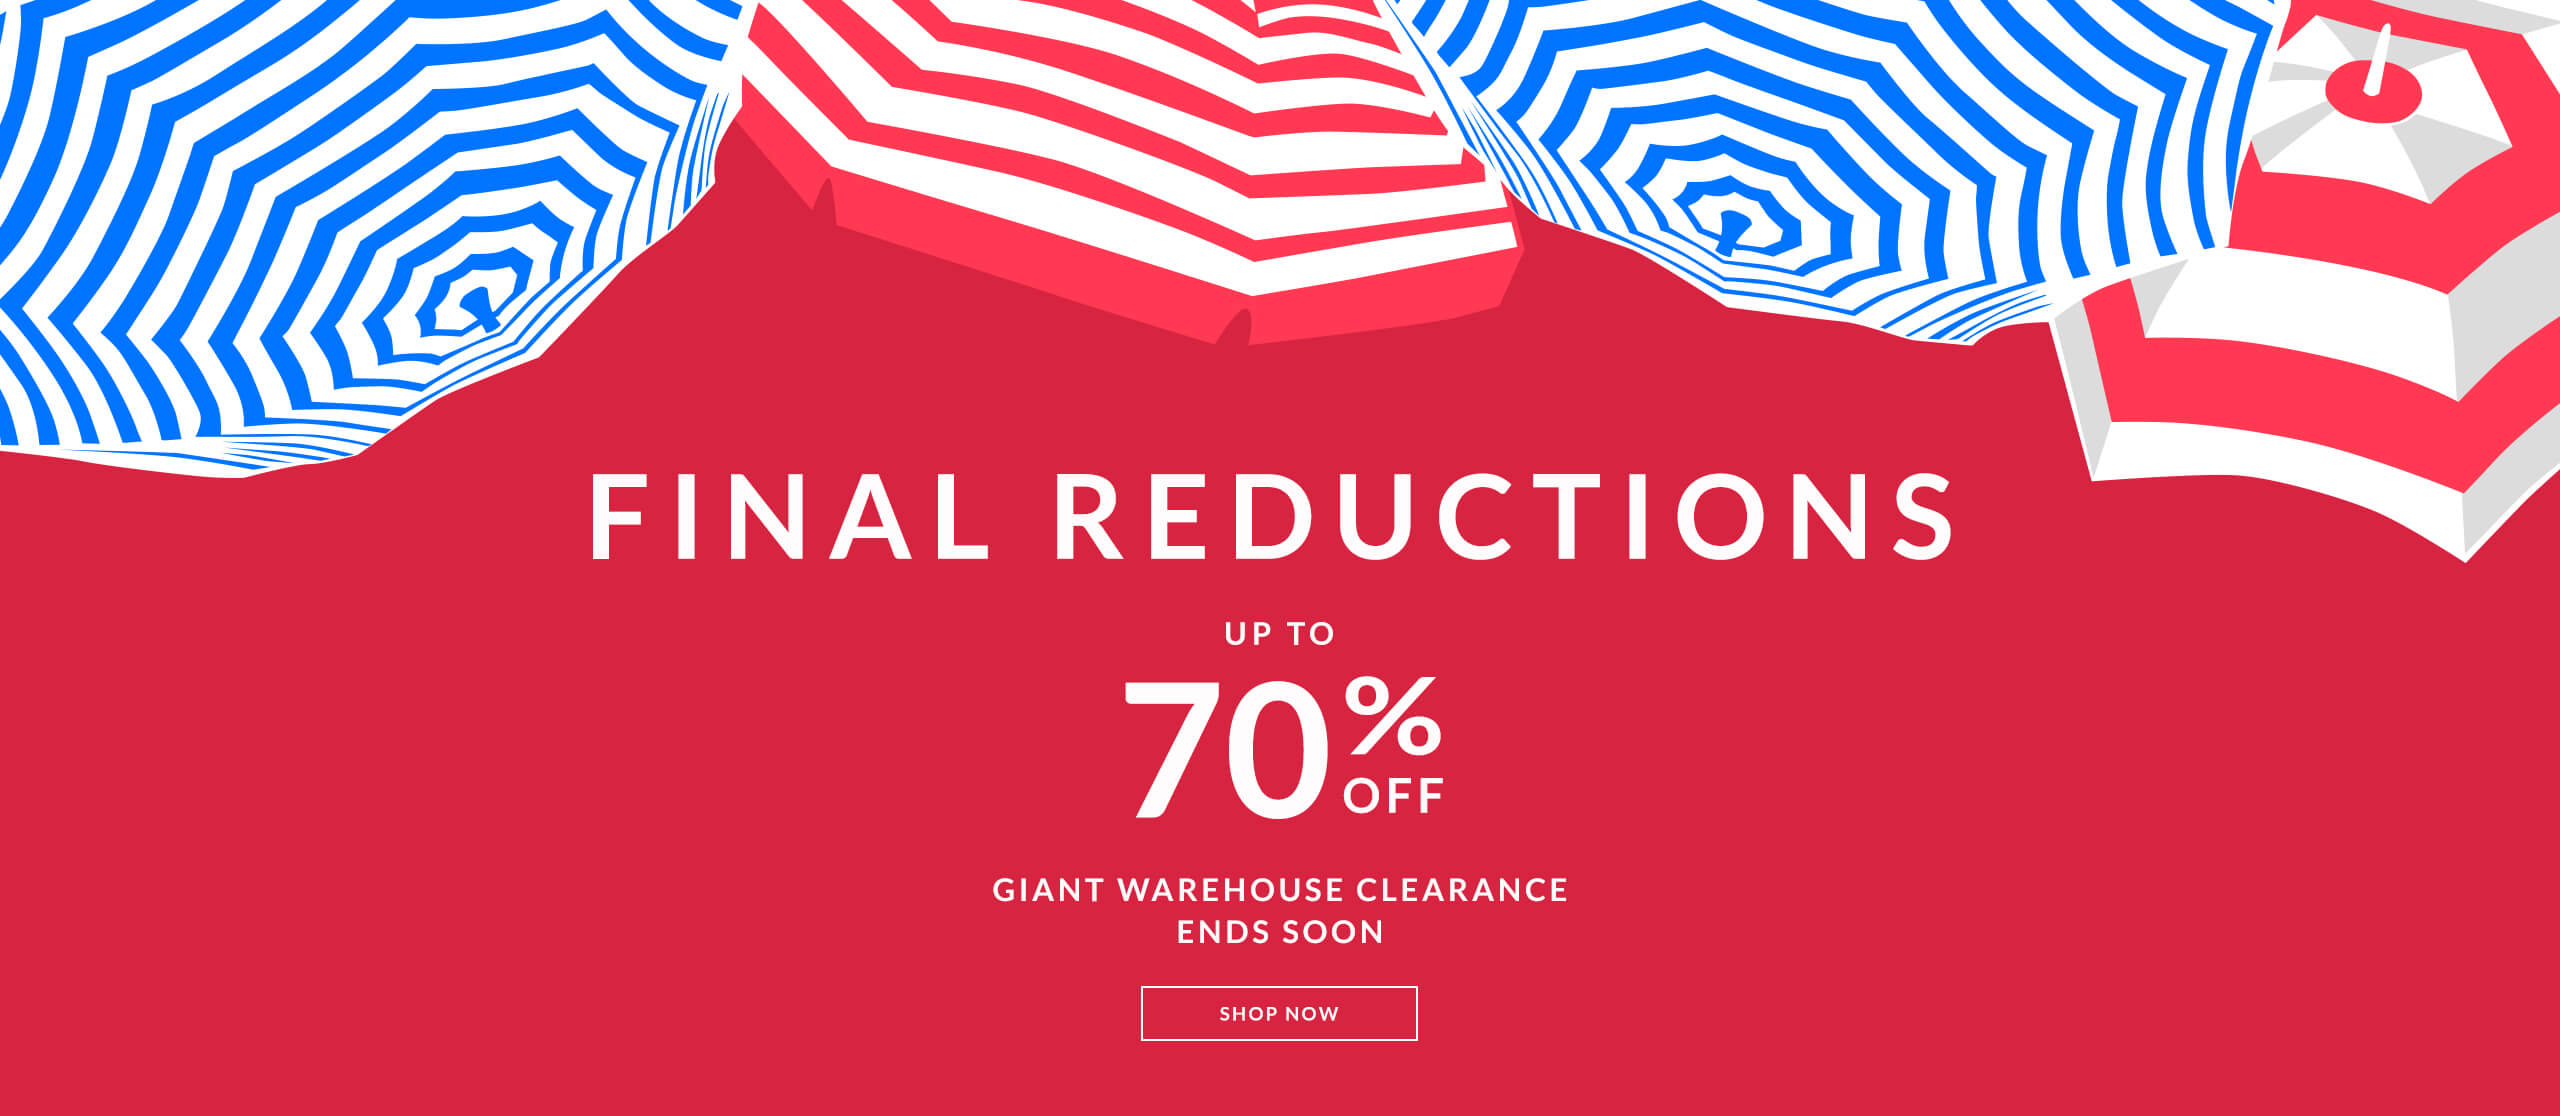 Final reductions of up to 70% in the OSPREY LONDON Giant Warehouse Clearance